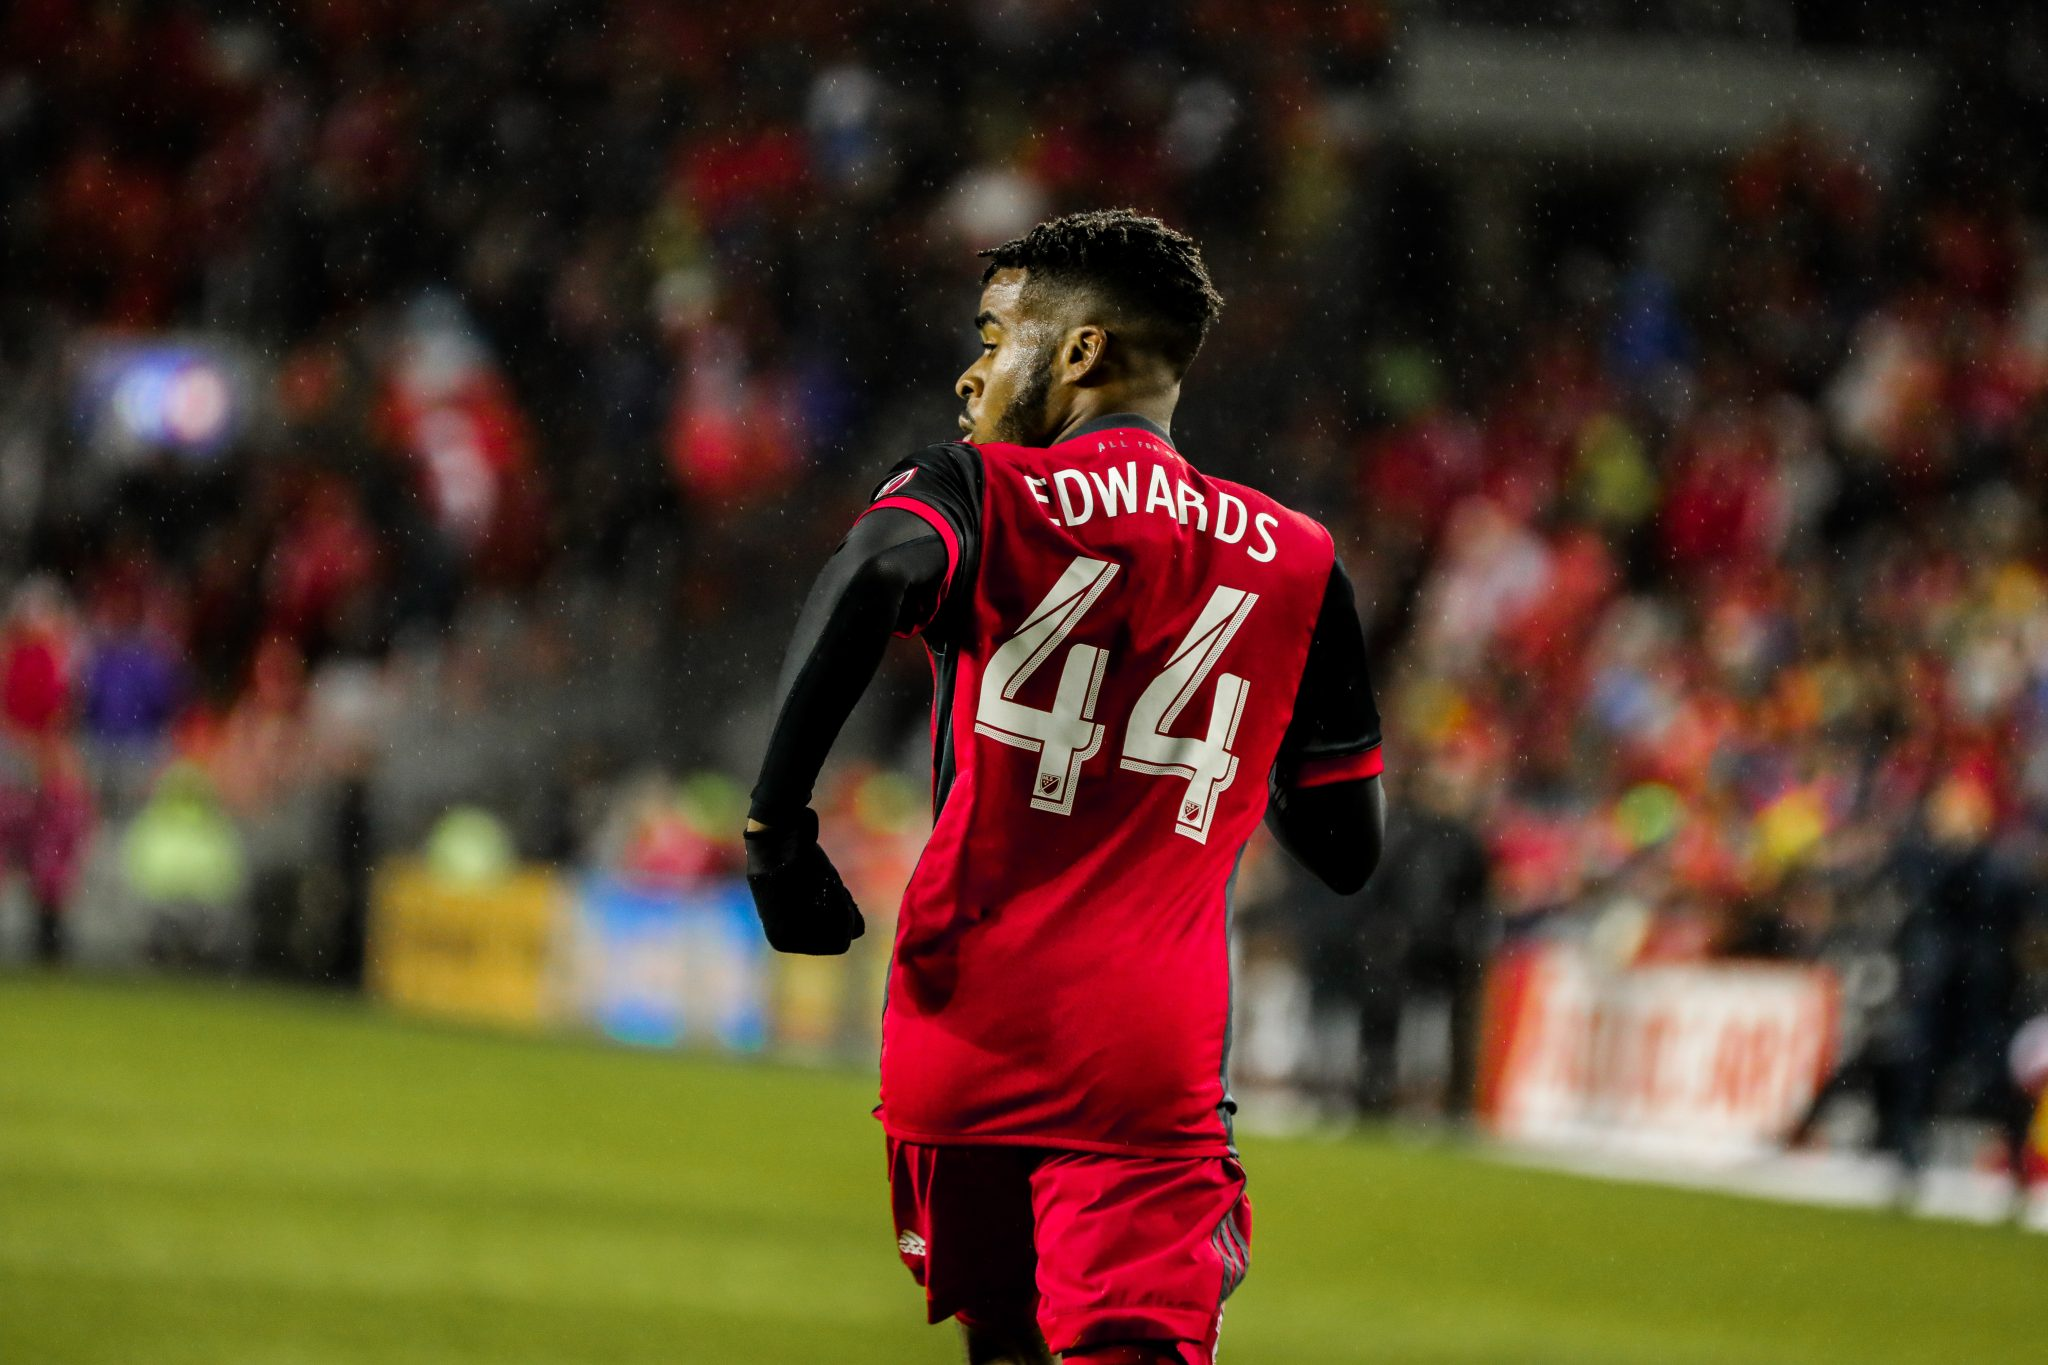 Raheem Edwards seen in his first game, the 2017 home opener at BMO Field. Luke Galati Photography. Shot for Toronto FC Digital